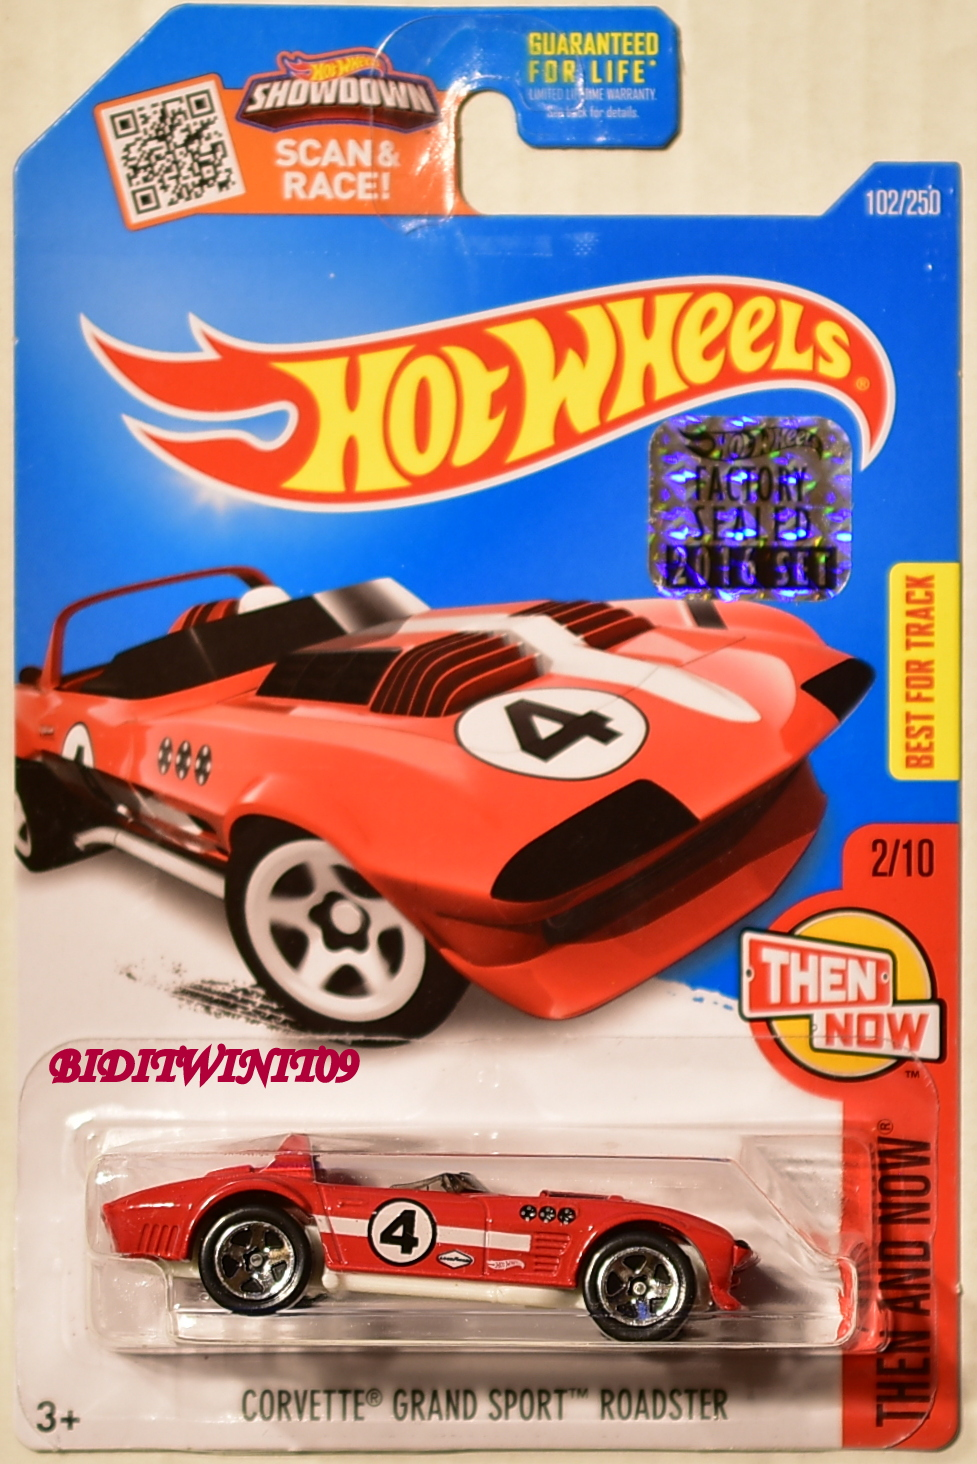 HOT WHEELS 2016 THEN AND NOW CORVETTE GRAND SPORT ROADSTER RED FACTORY SEALED